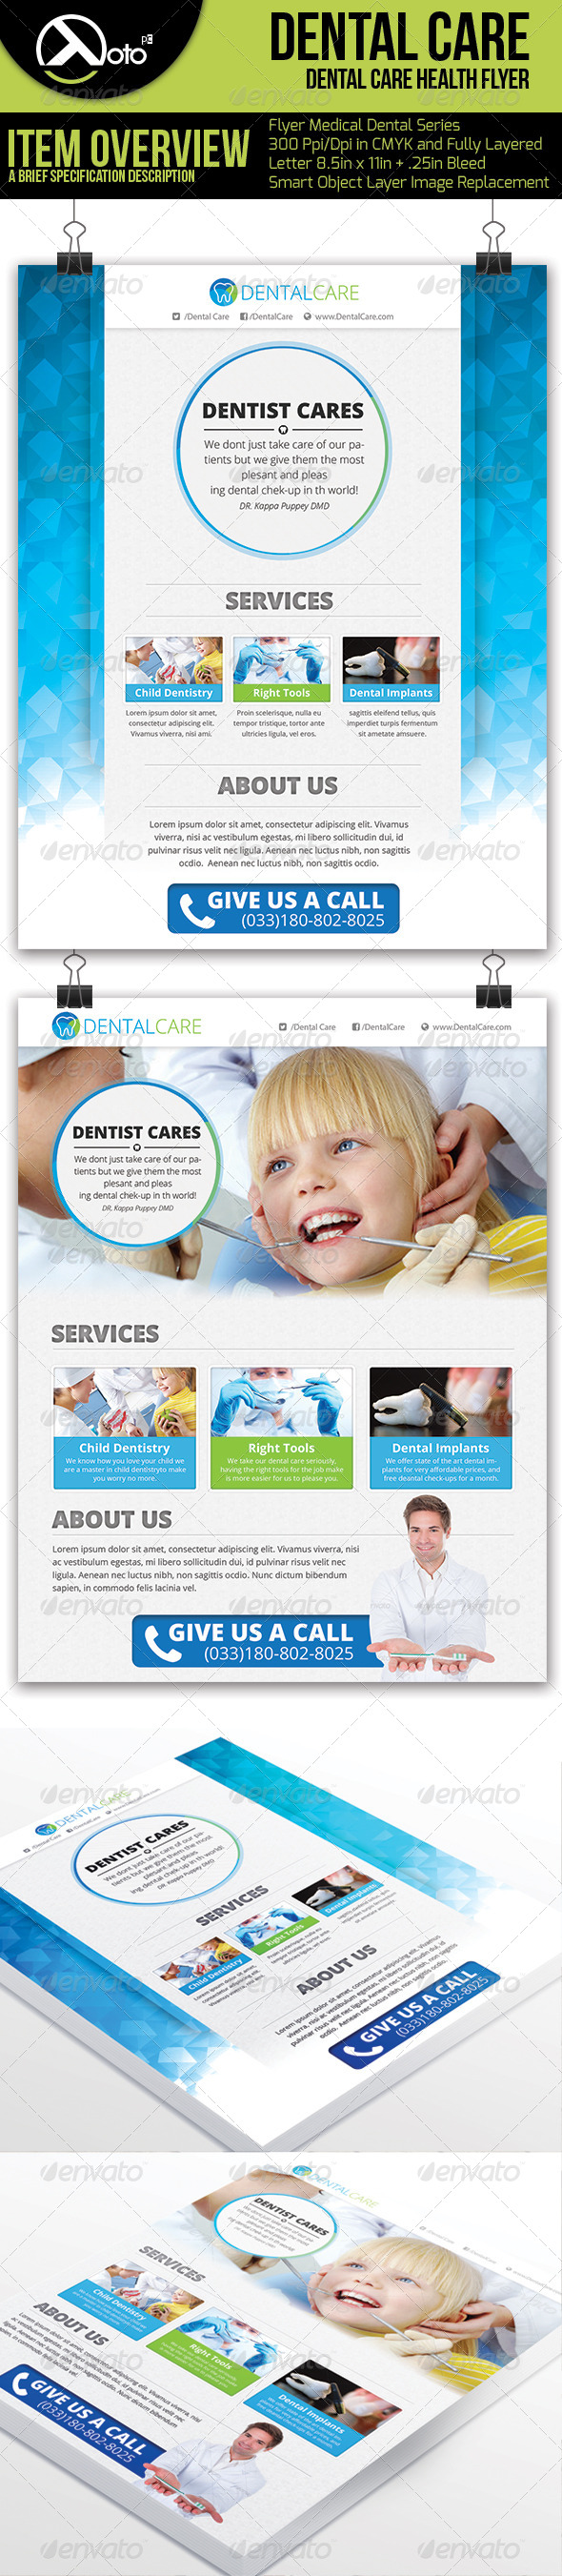 Medical Dental Care Health Flyer - Flyers Print Templates